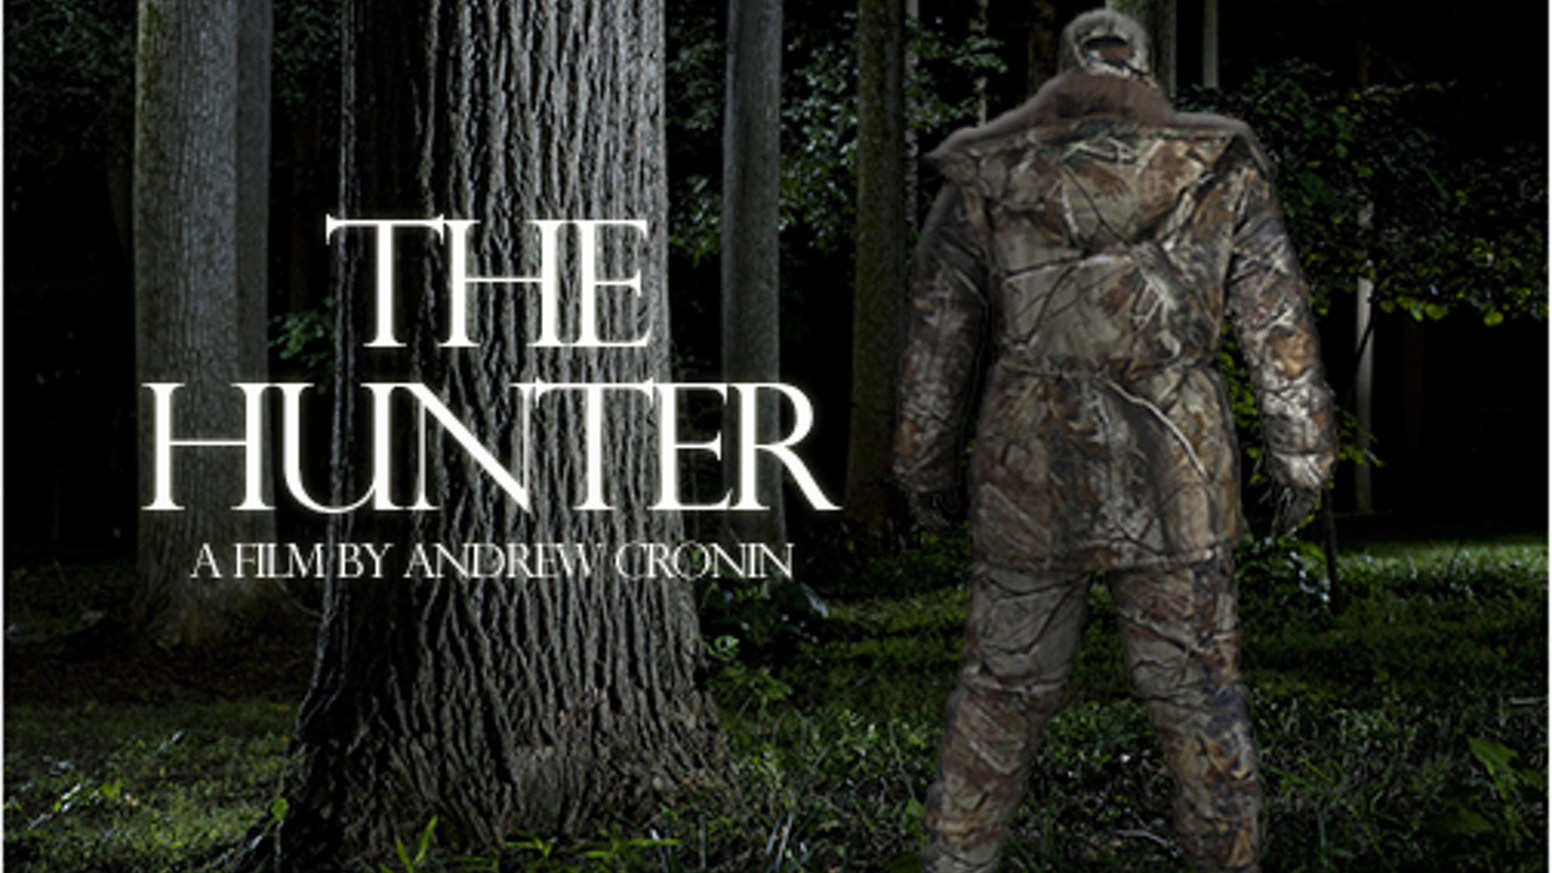 The Hunted (1995) directed by J. F. Lawton • Reviews ... |The Hunted Movie Cast